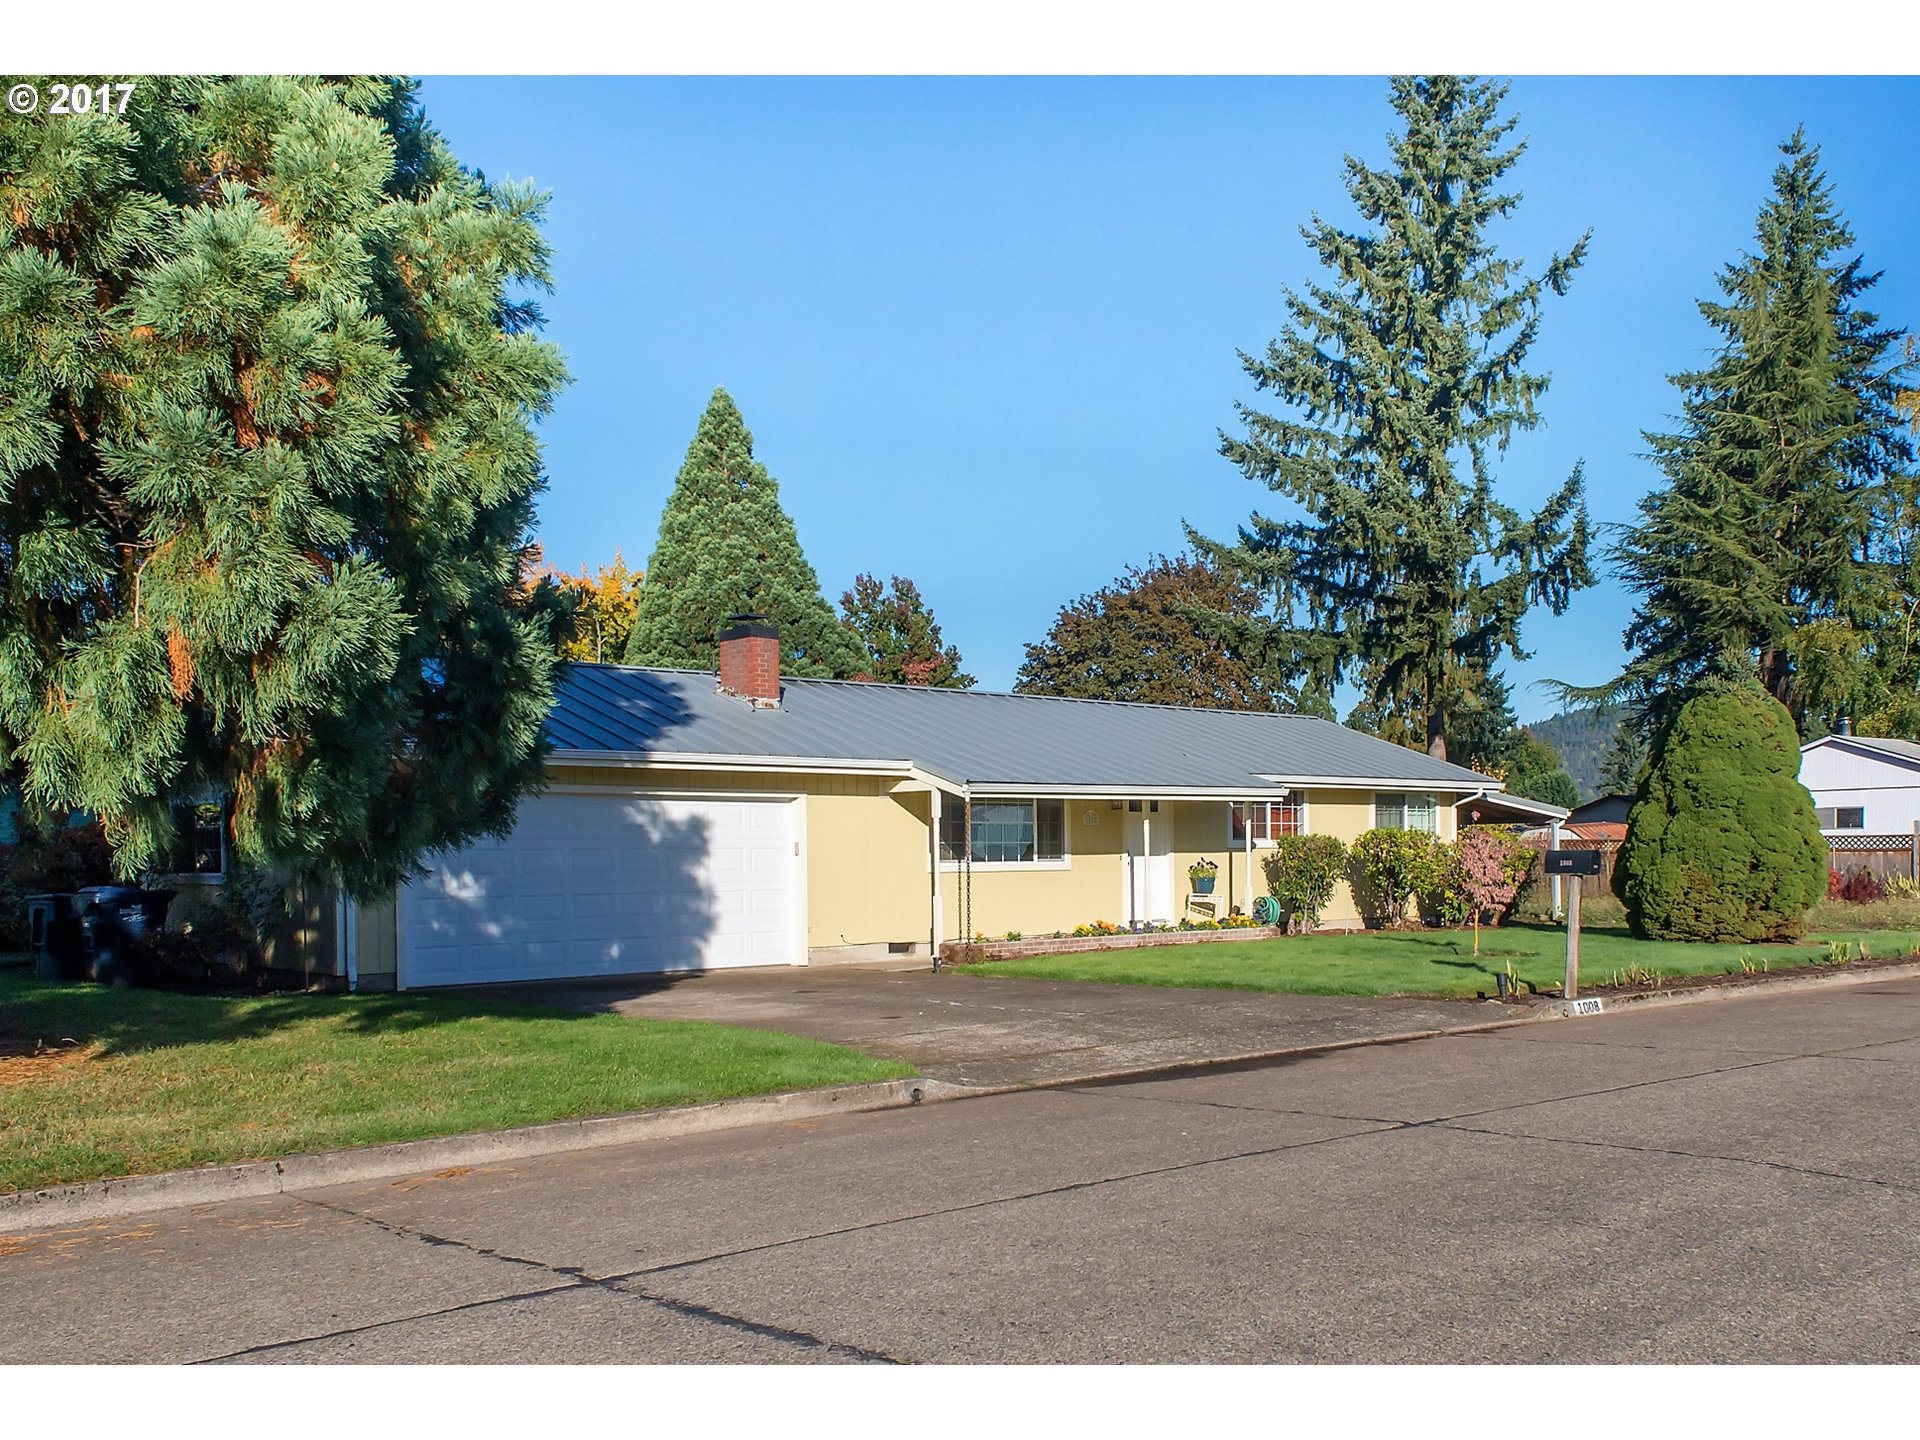 1008 57TH ST, Springfield OR 97478